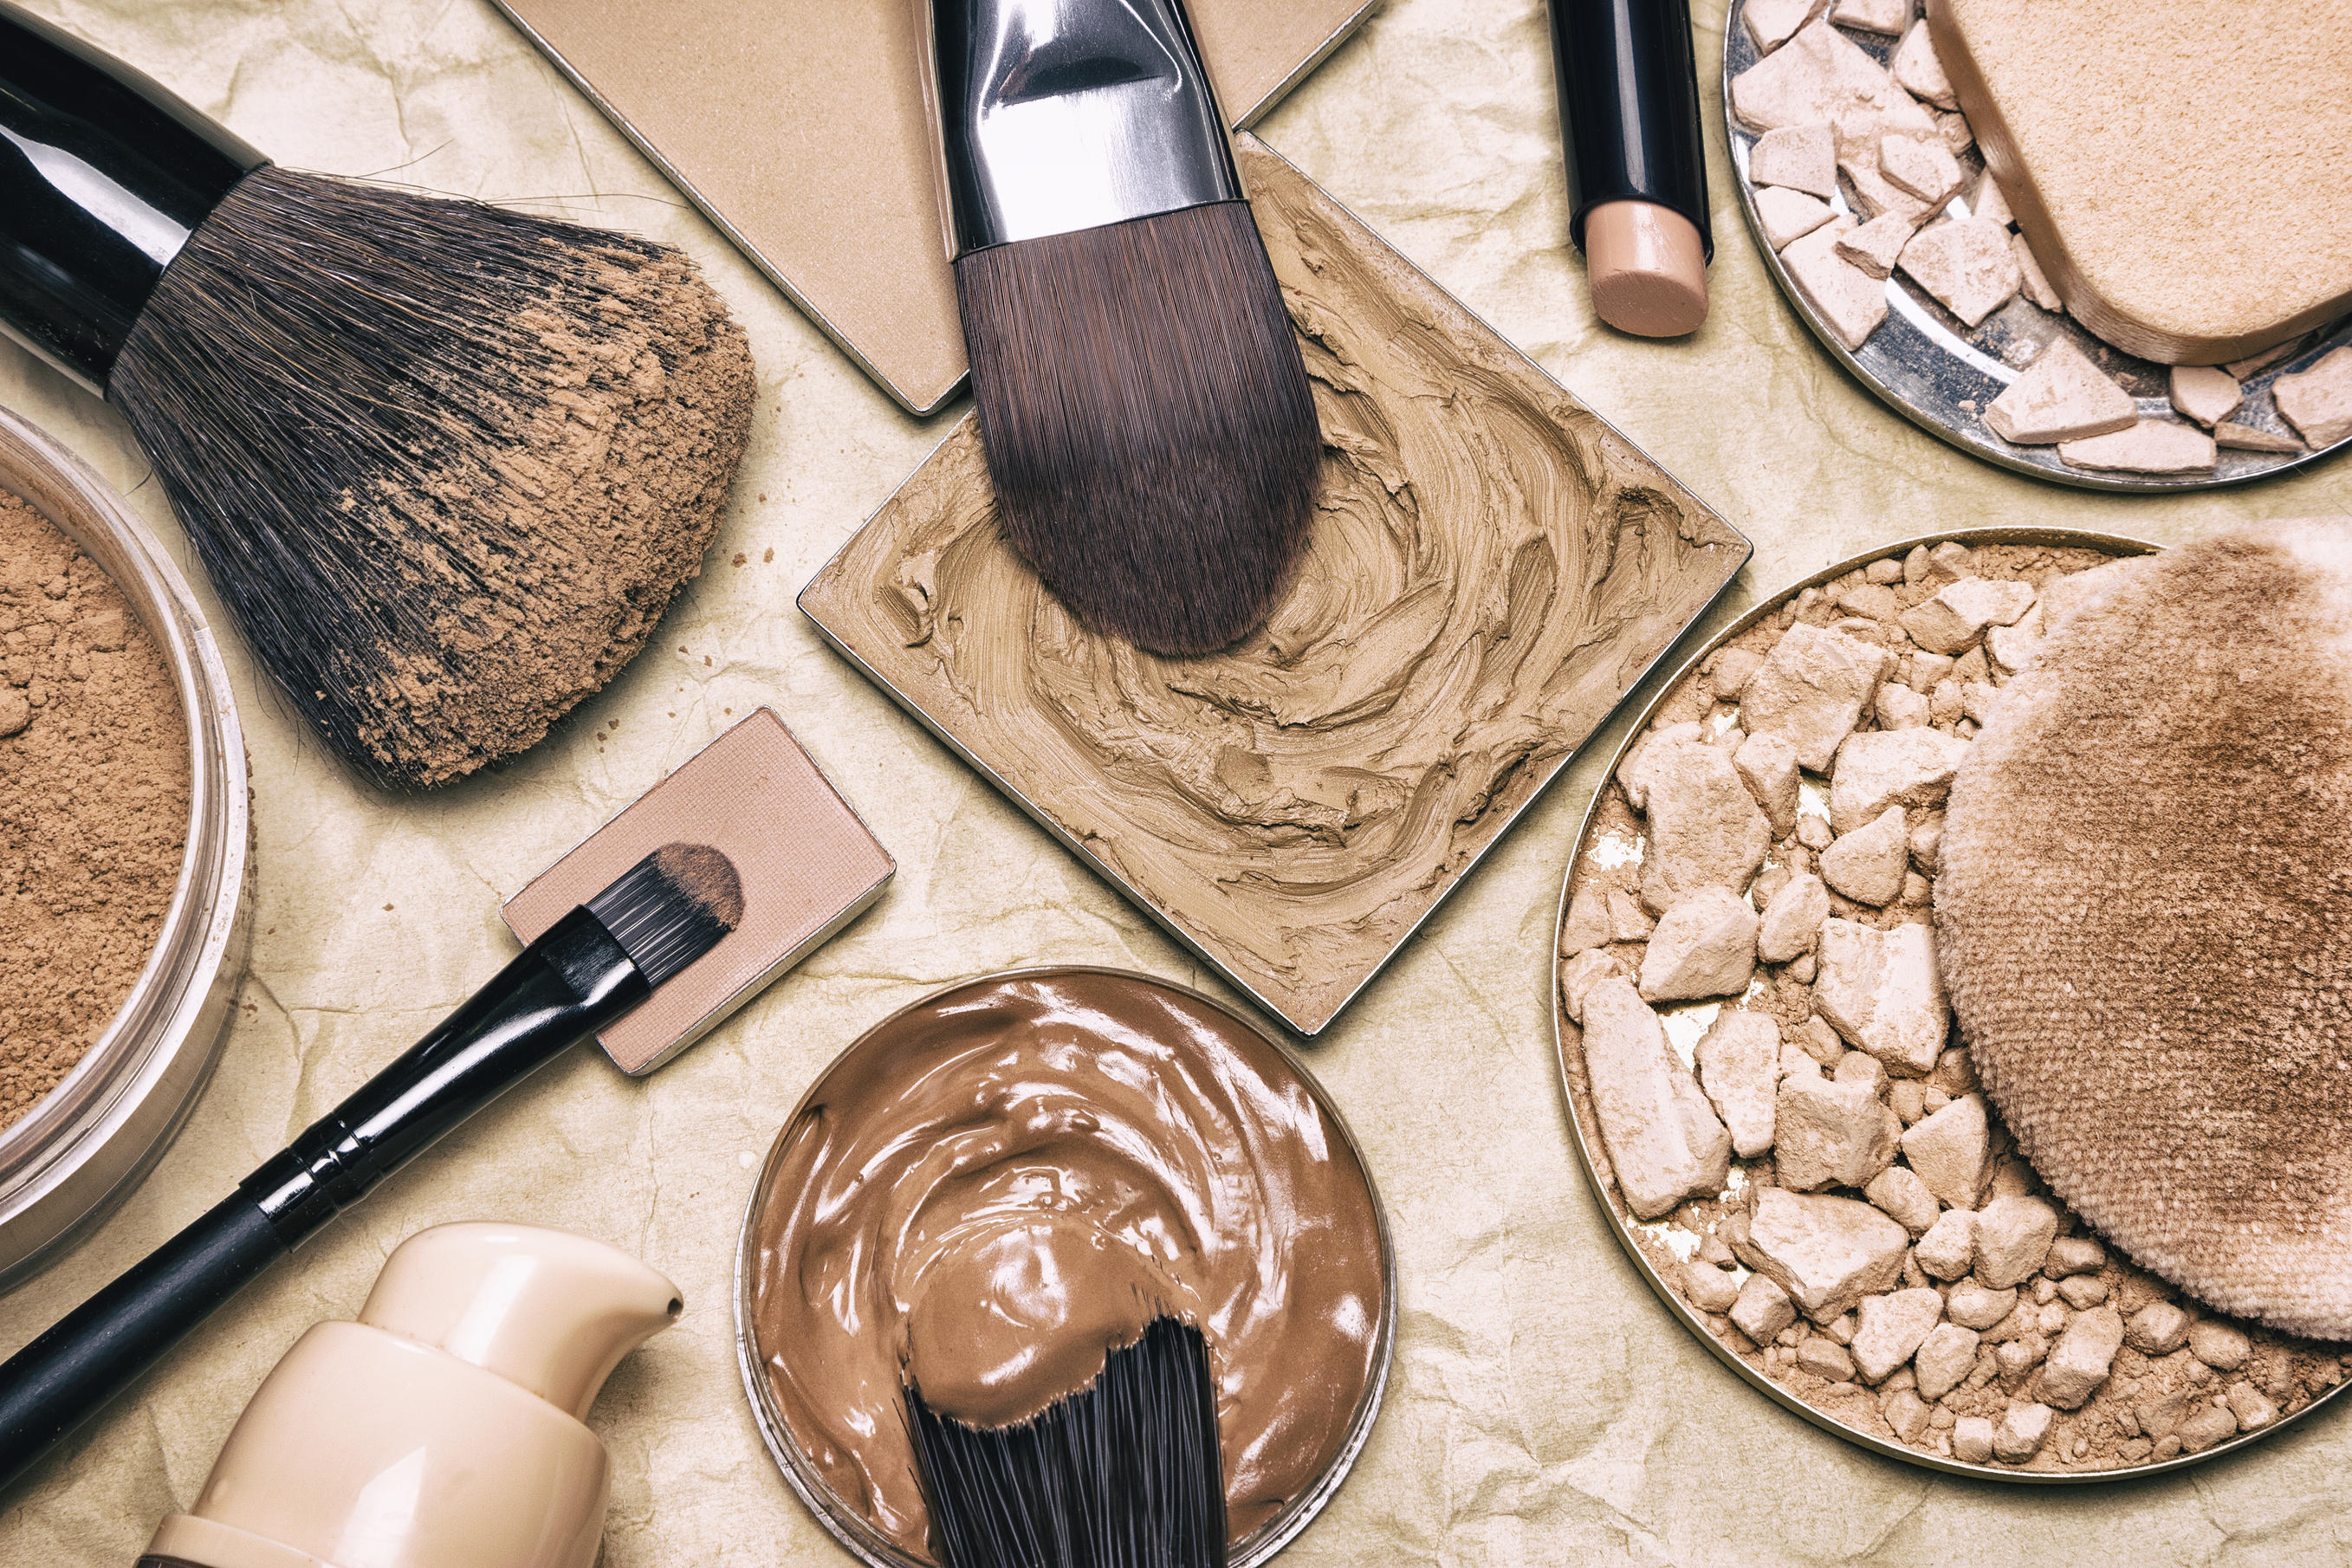 Makeup brushes, concealer and foundation